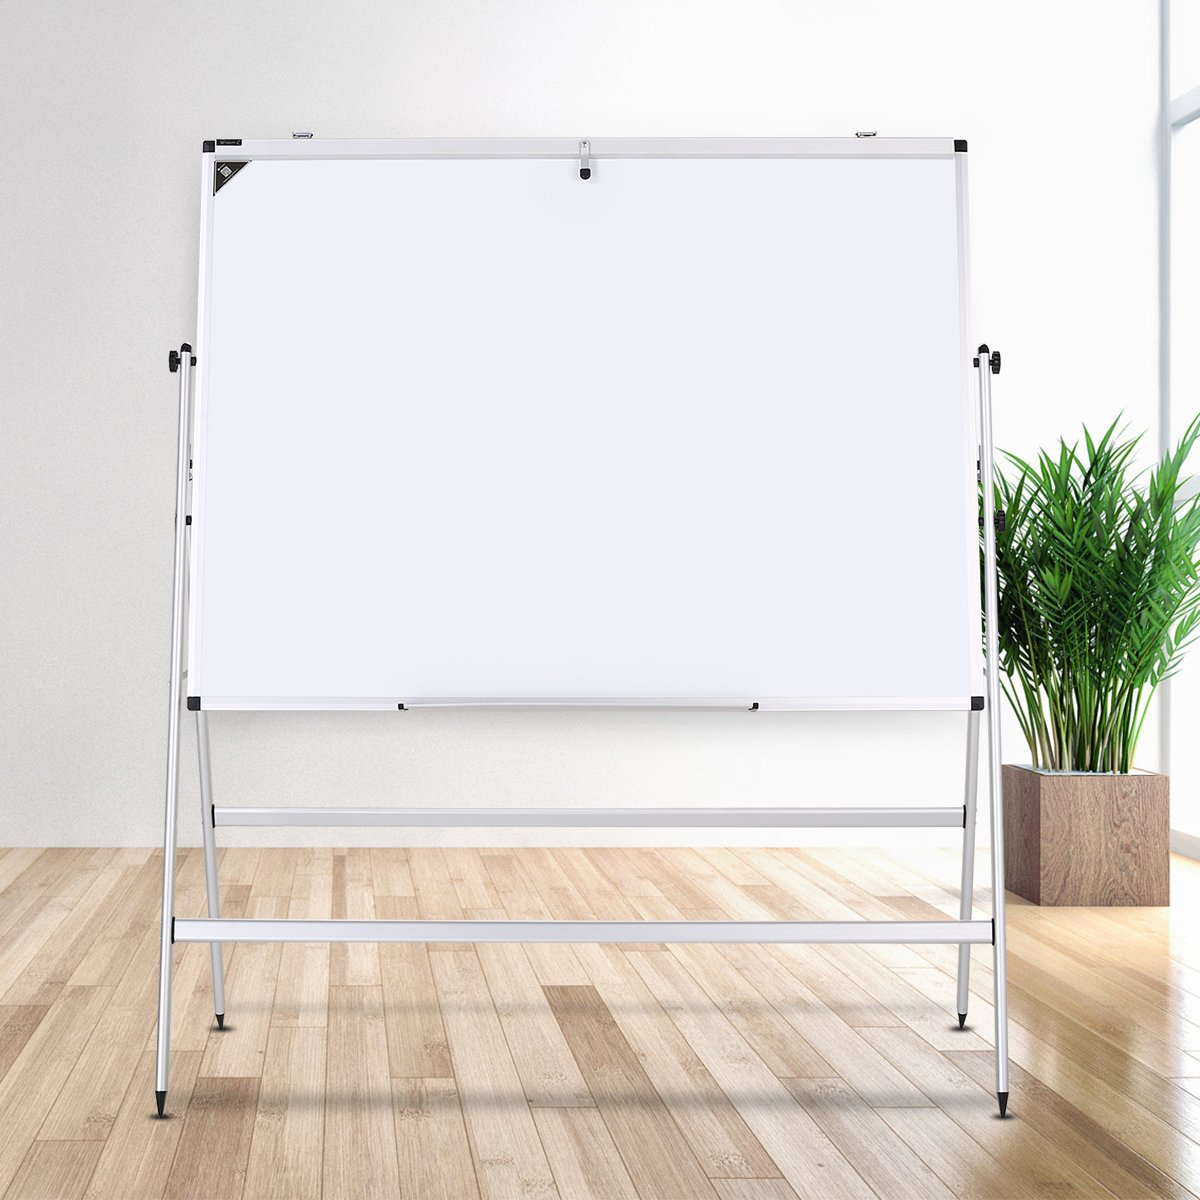 ZHIDIAN Folding Slide Rail Height Adjustment Aluminum Alloy Magnetic Dry Erase Board Easel, Bulletin Board White Boards, Silver Frame (32Hx48W Inches, Horizontal type)